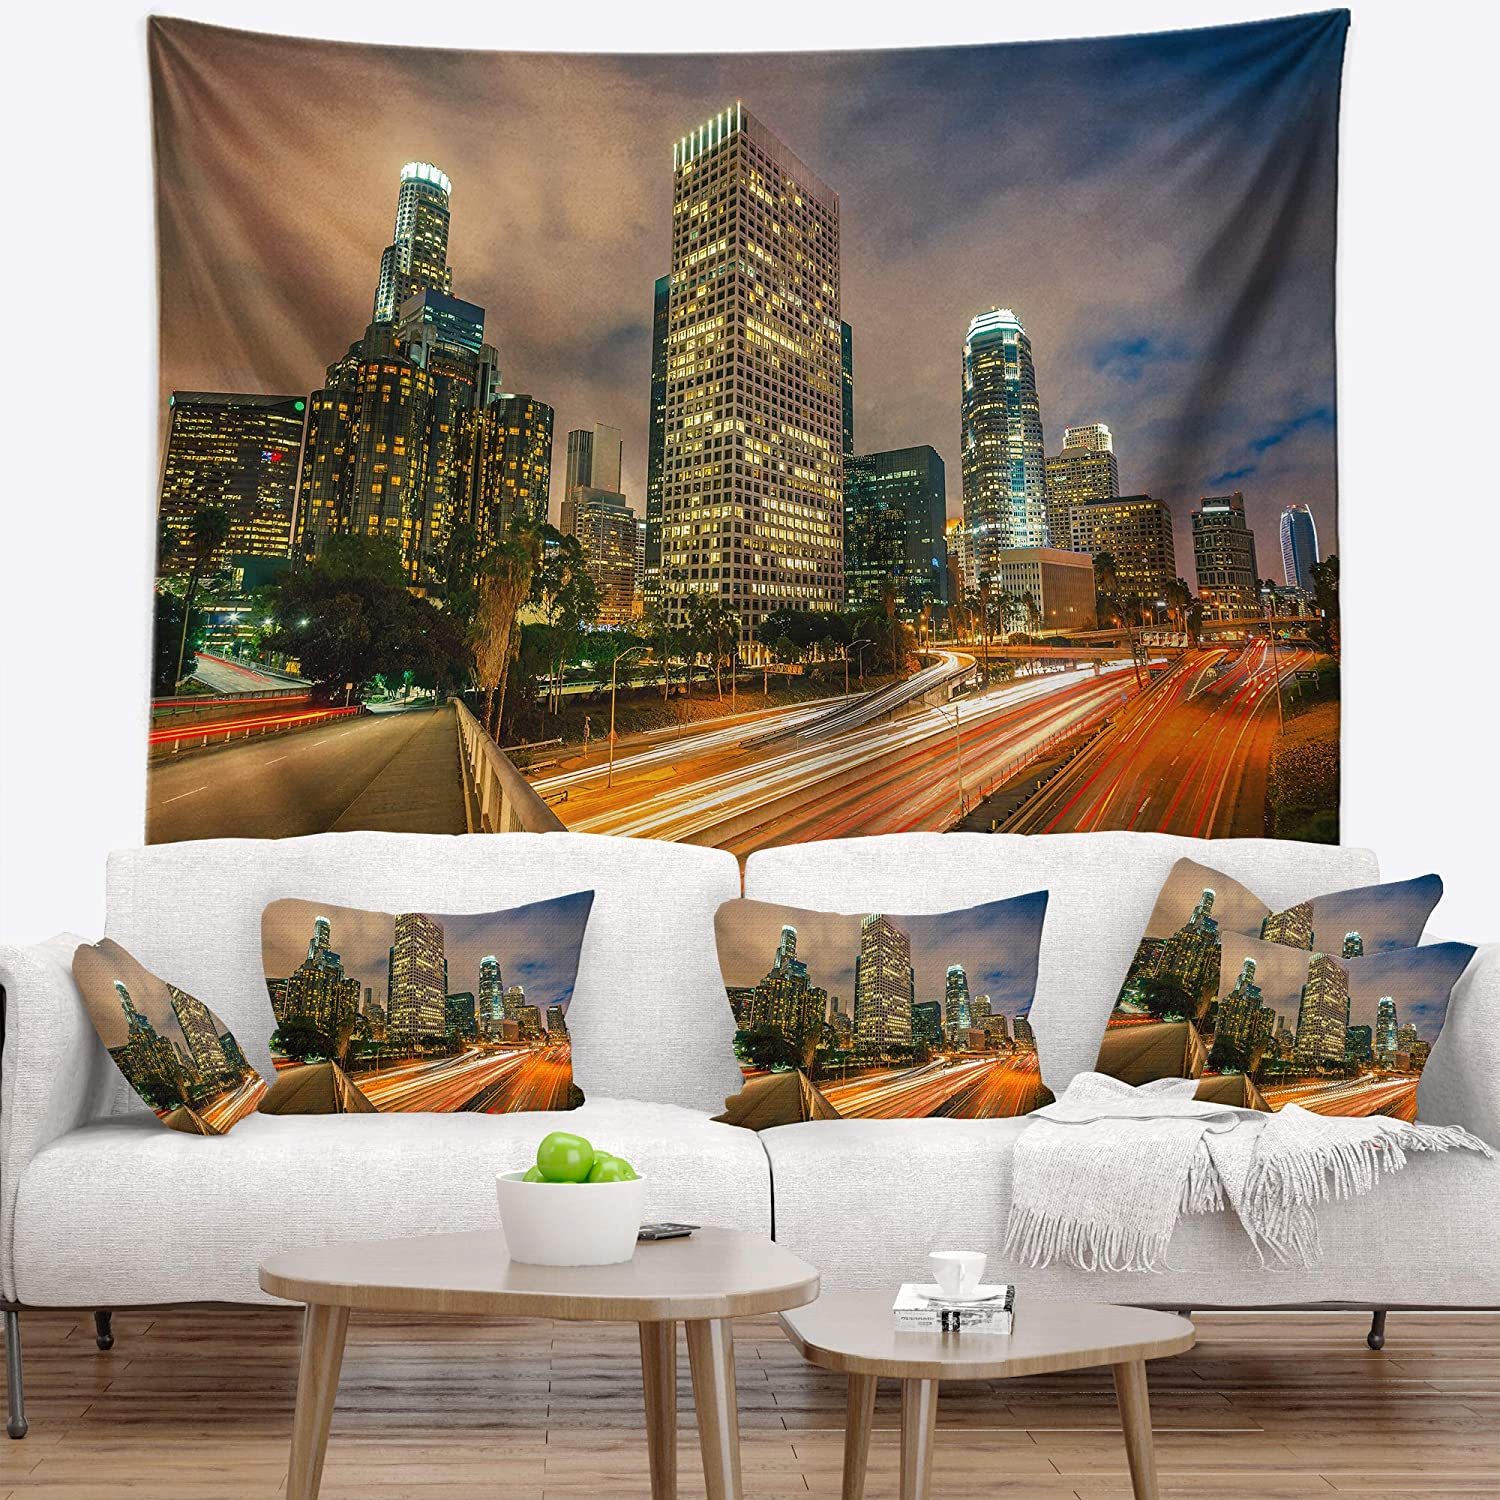 Designart TAP7547-80-68  Los Angeles Yellow Skyline Night Cityscape Blanket D/écor Art for Home and Office Wall Tapestry x Large Created On Lightweight Polyester Fabric 80 in x 68 in